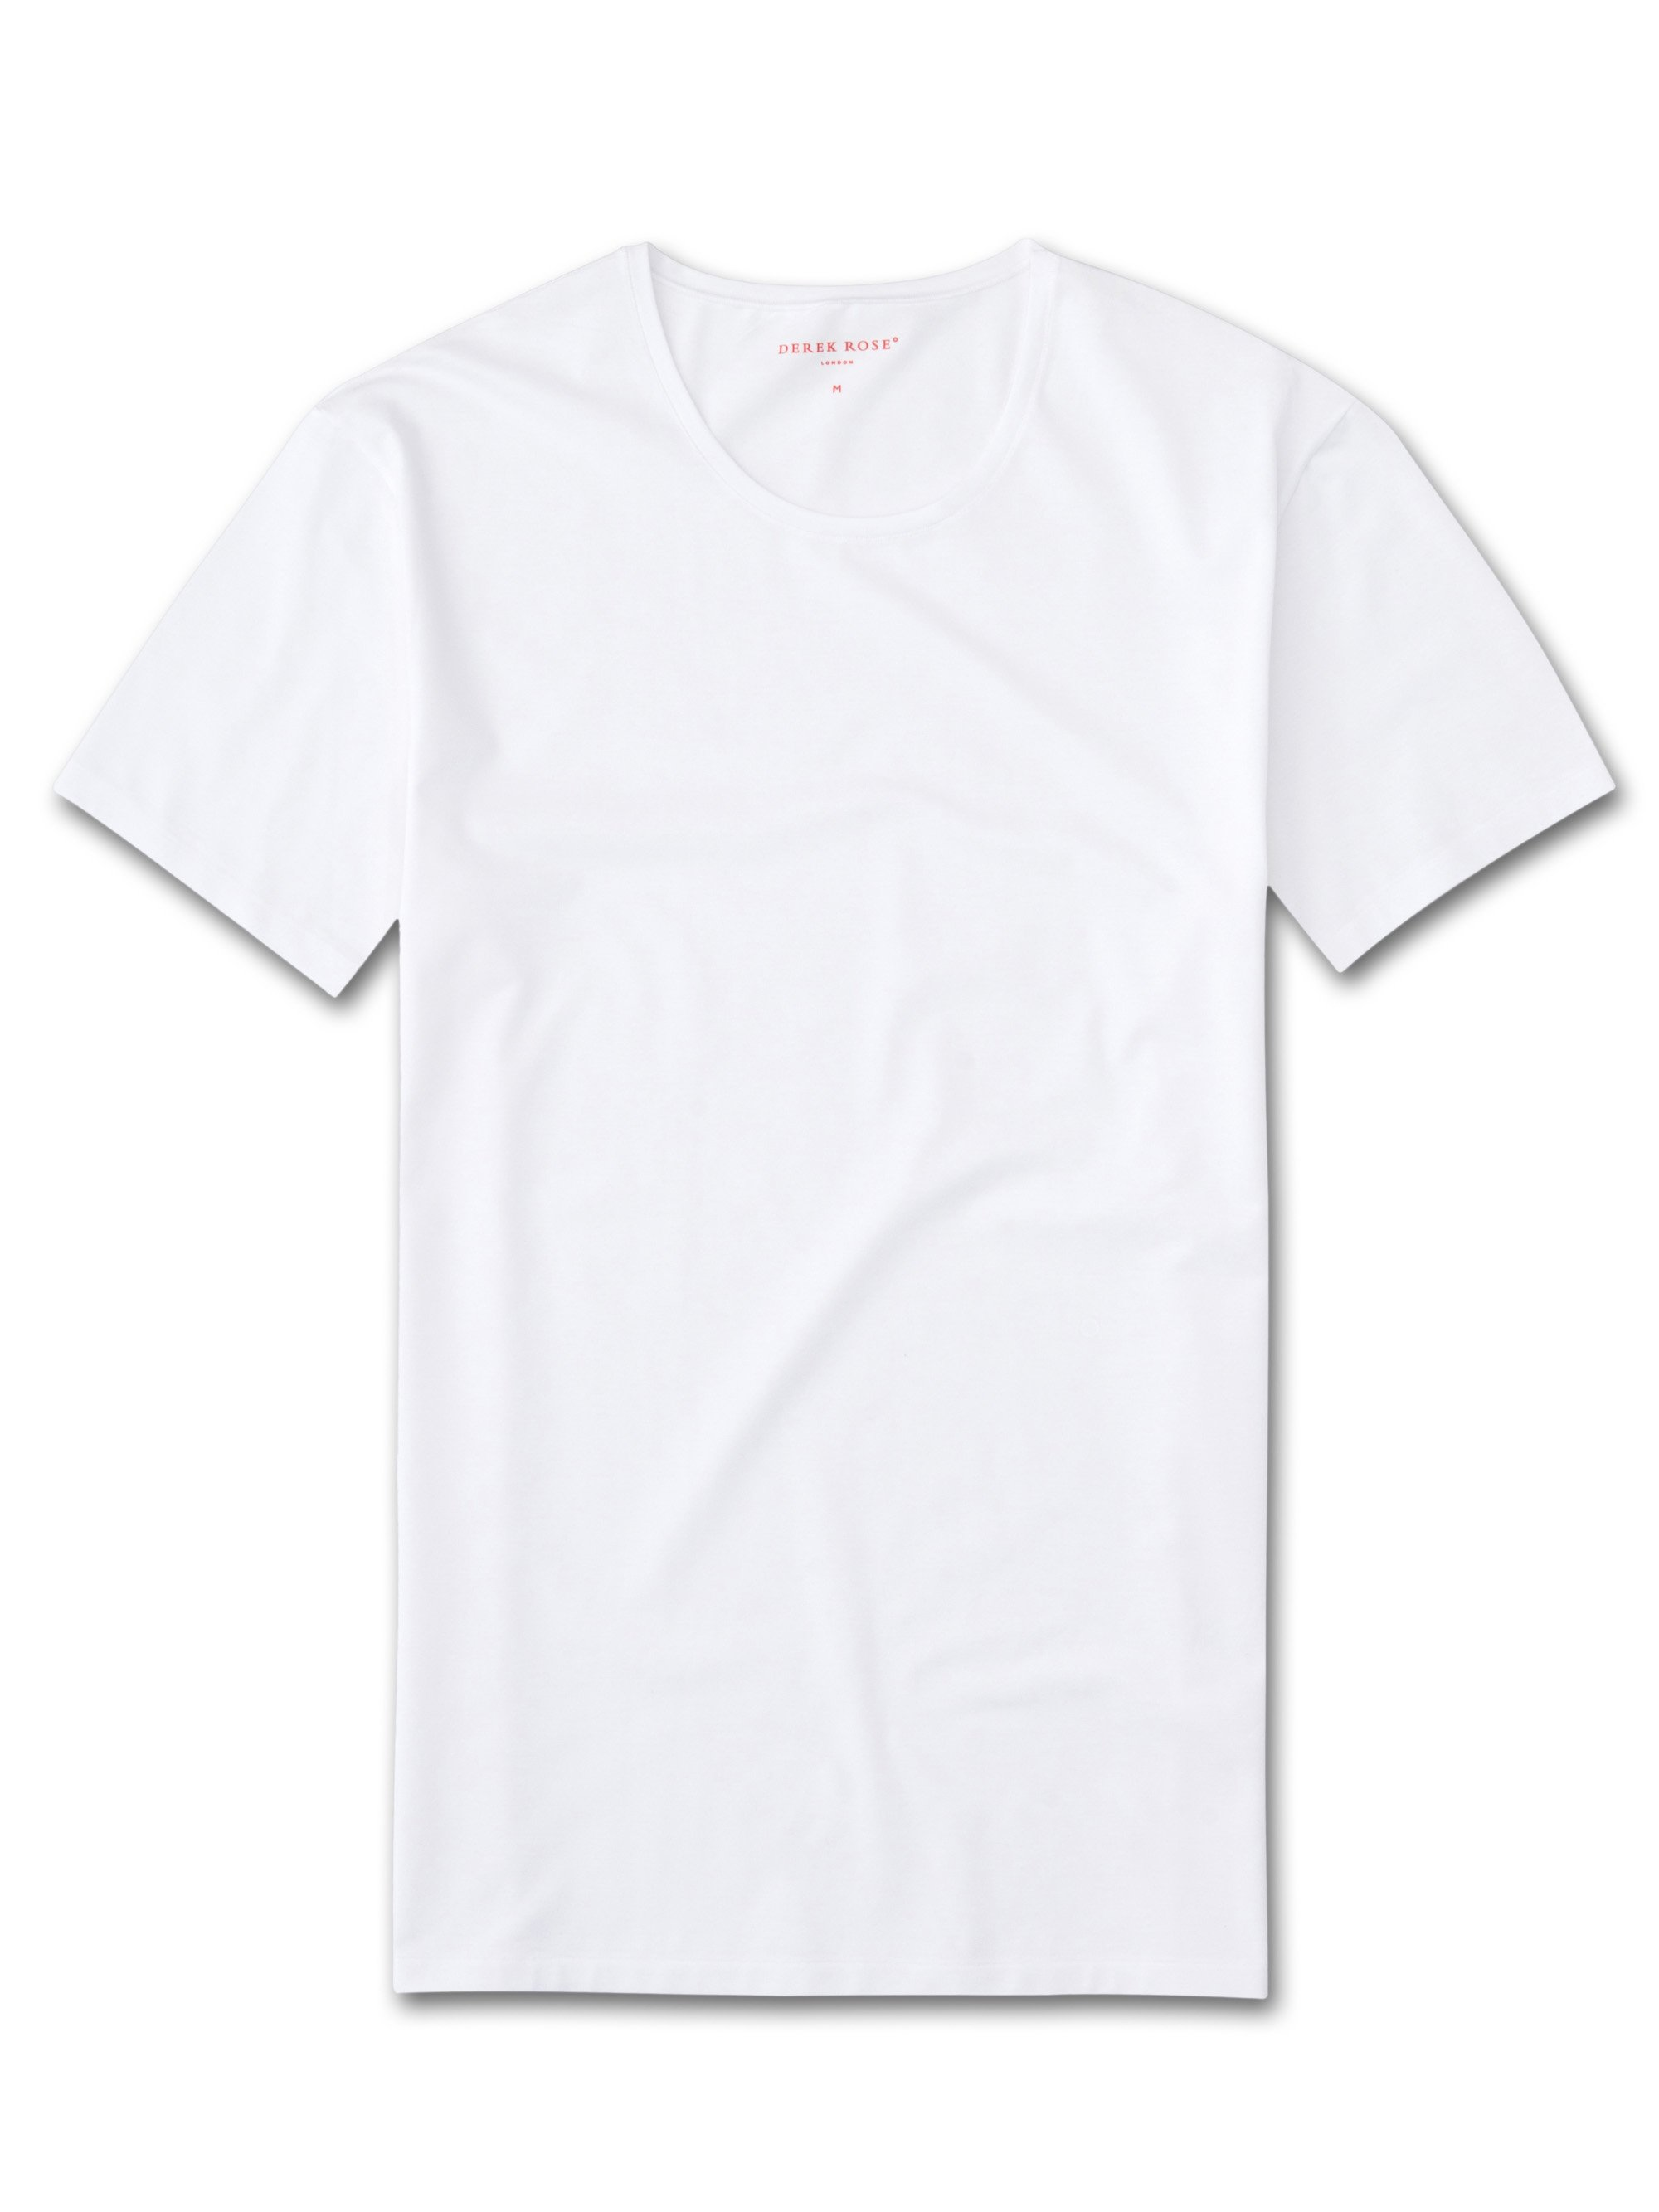 Men's Underwear Crew-Neck T-Shirt Jack Pima Cotton Stretch White